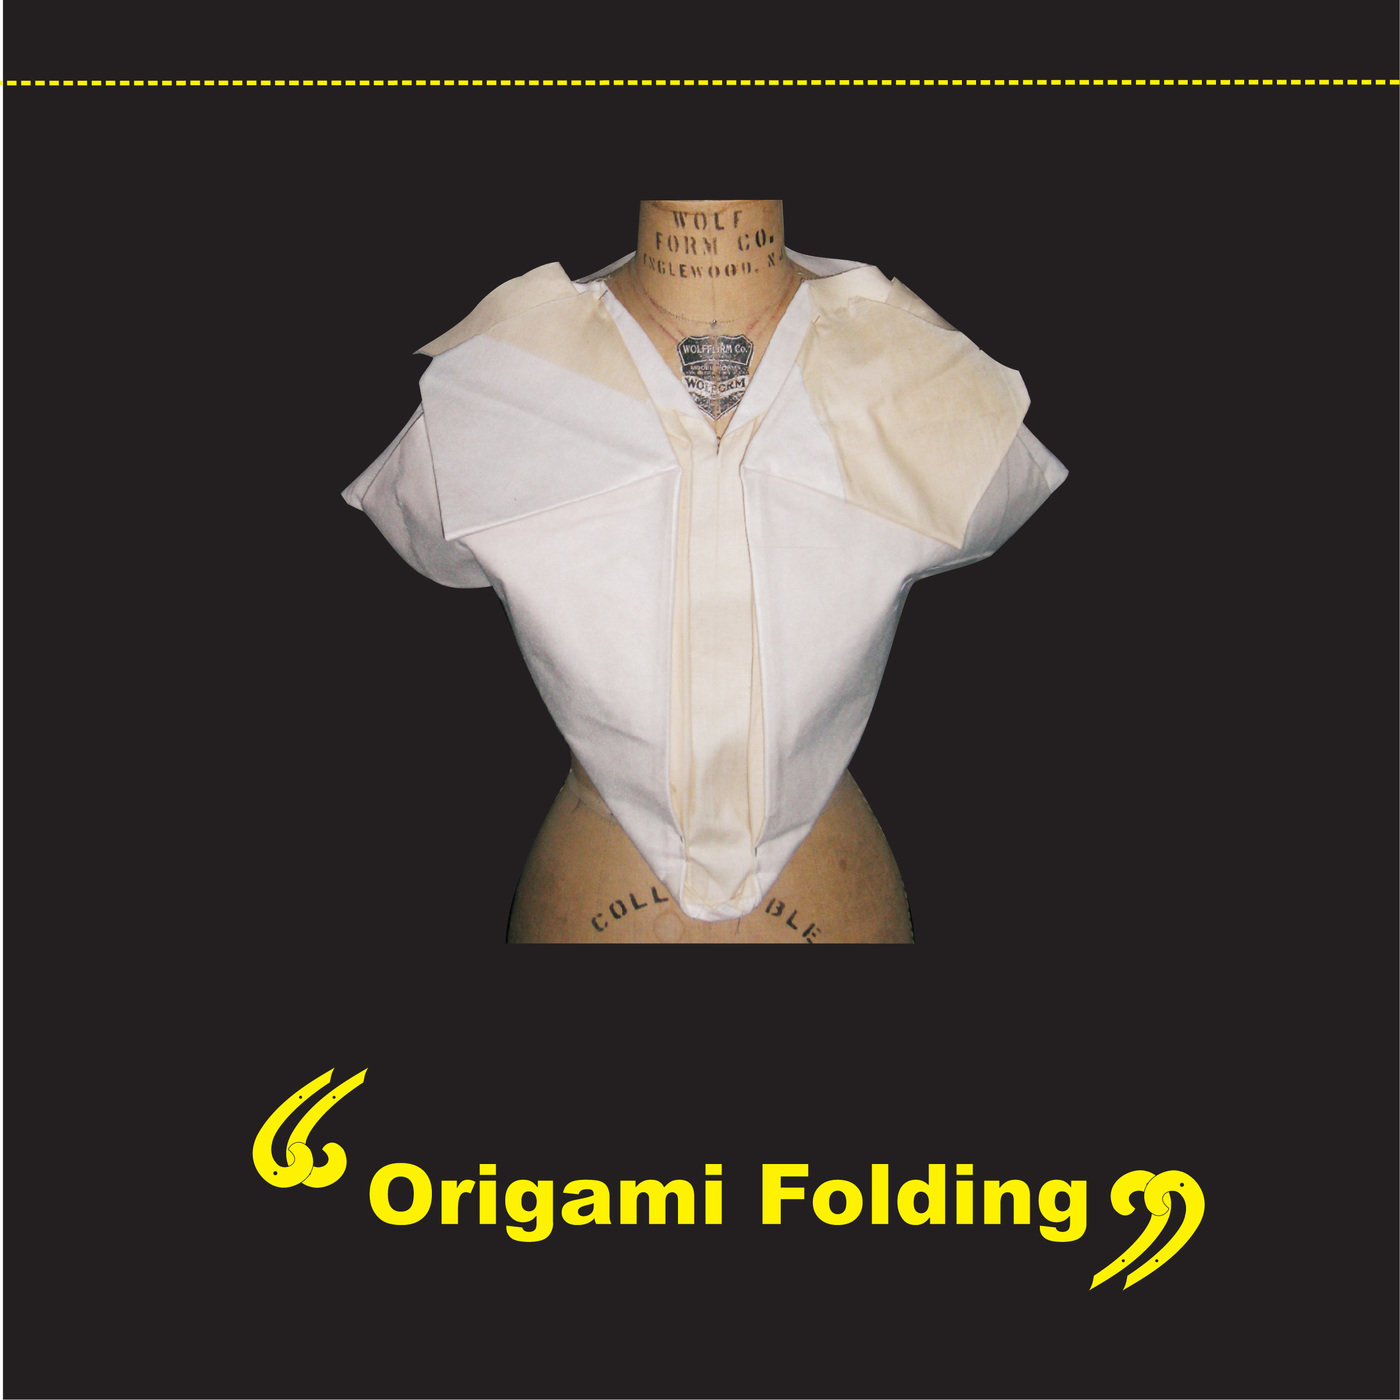 Innovative pattern making by damneet kaur at coroflot origami folding bodice this muslin fit is inspired by the art of origami as it is created by just folding the fabric to create textures and give a jeuxipadfo Gallery